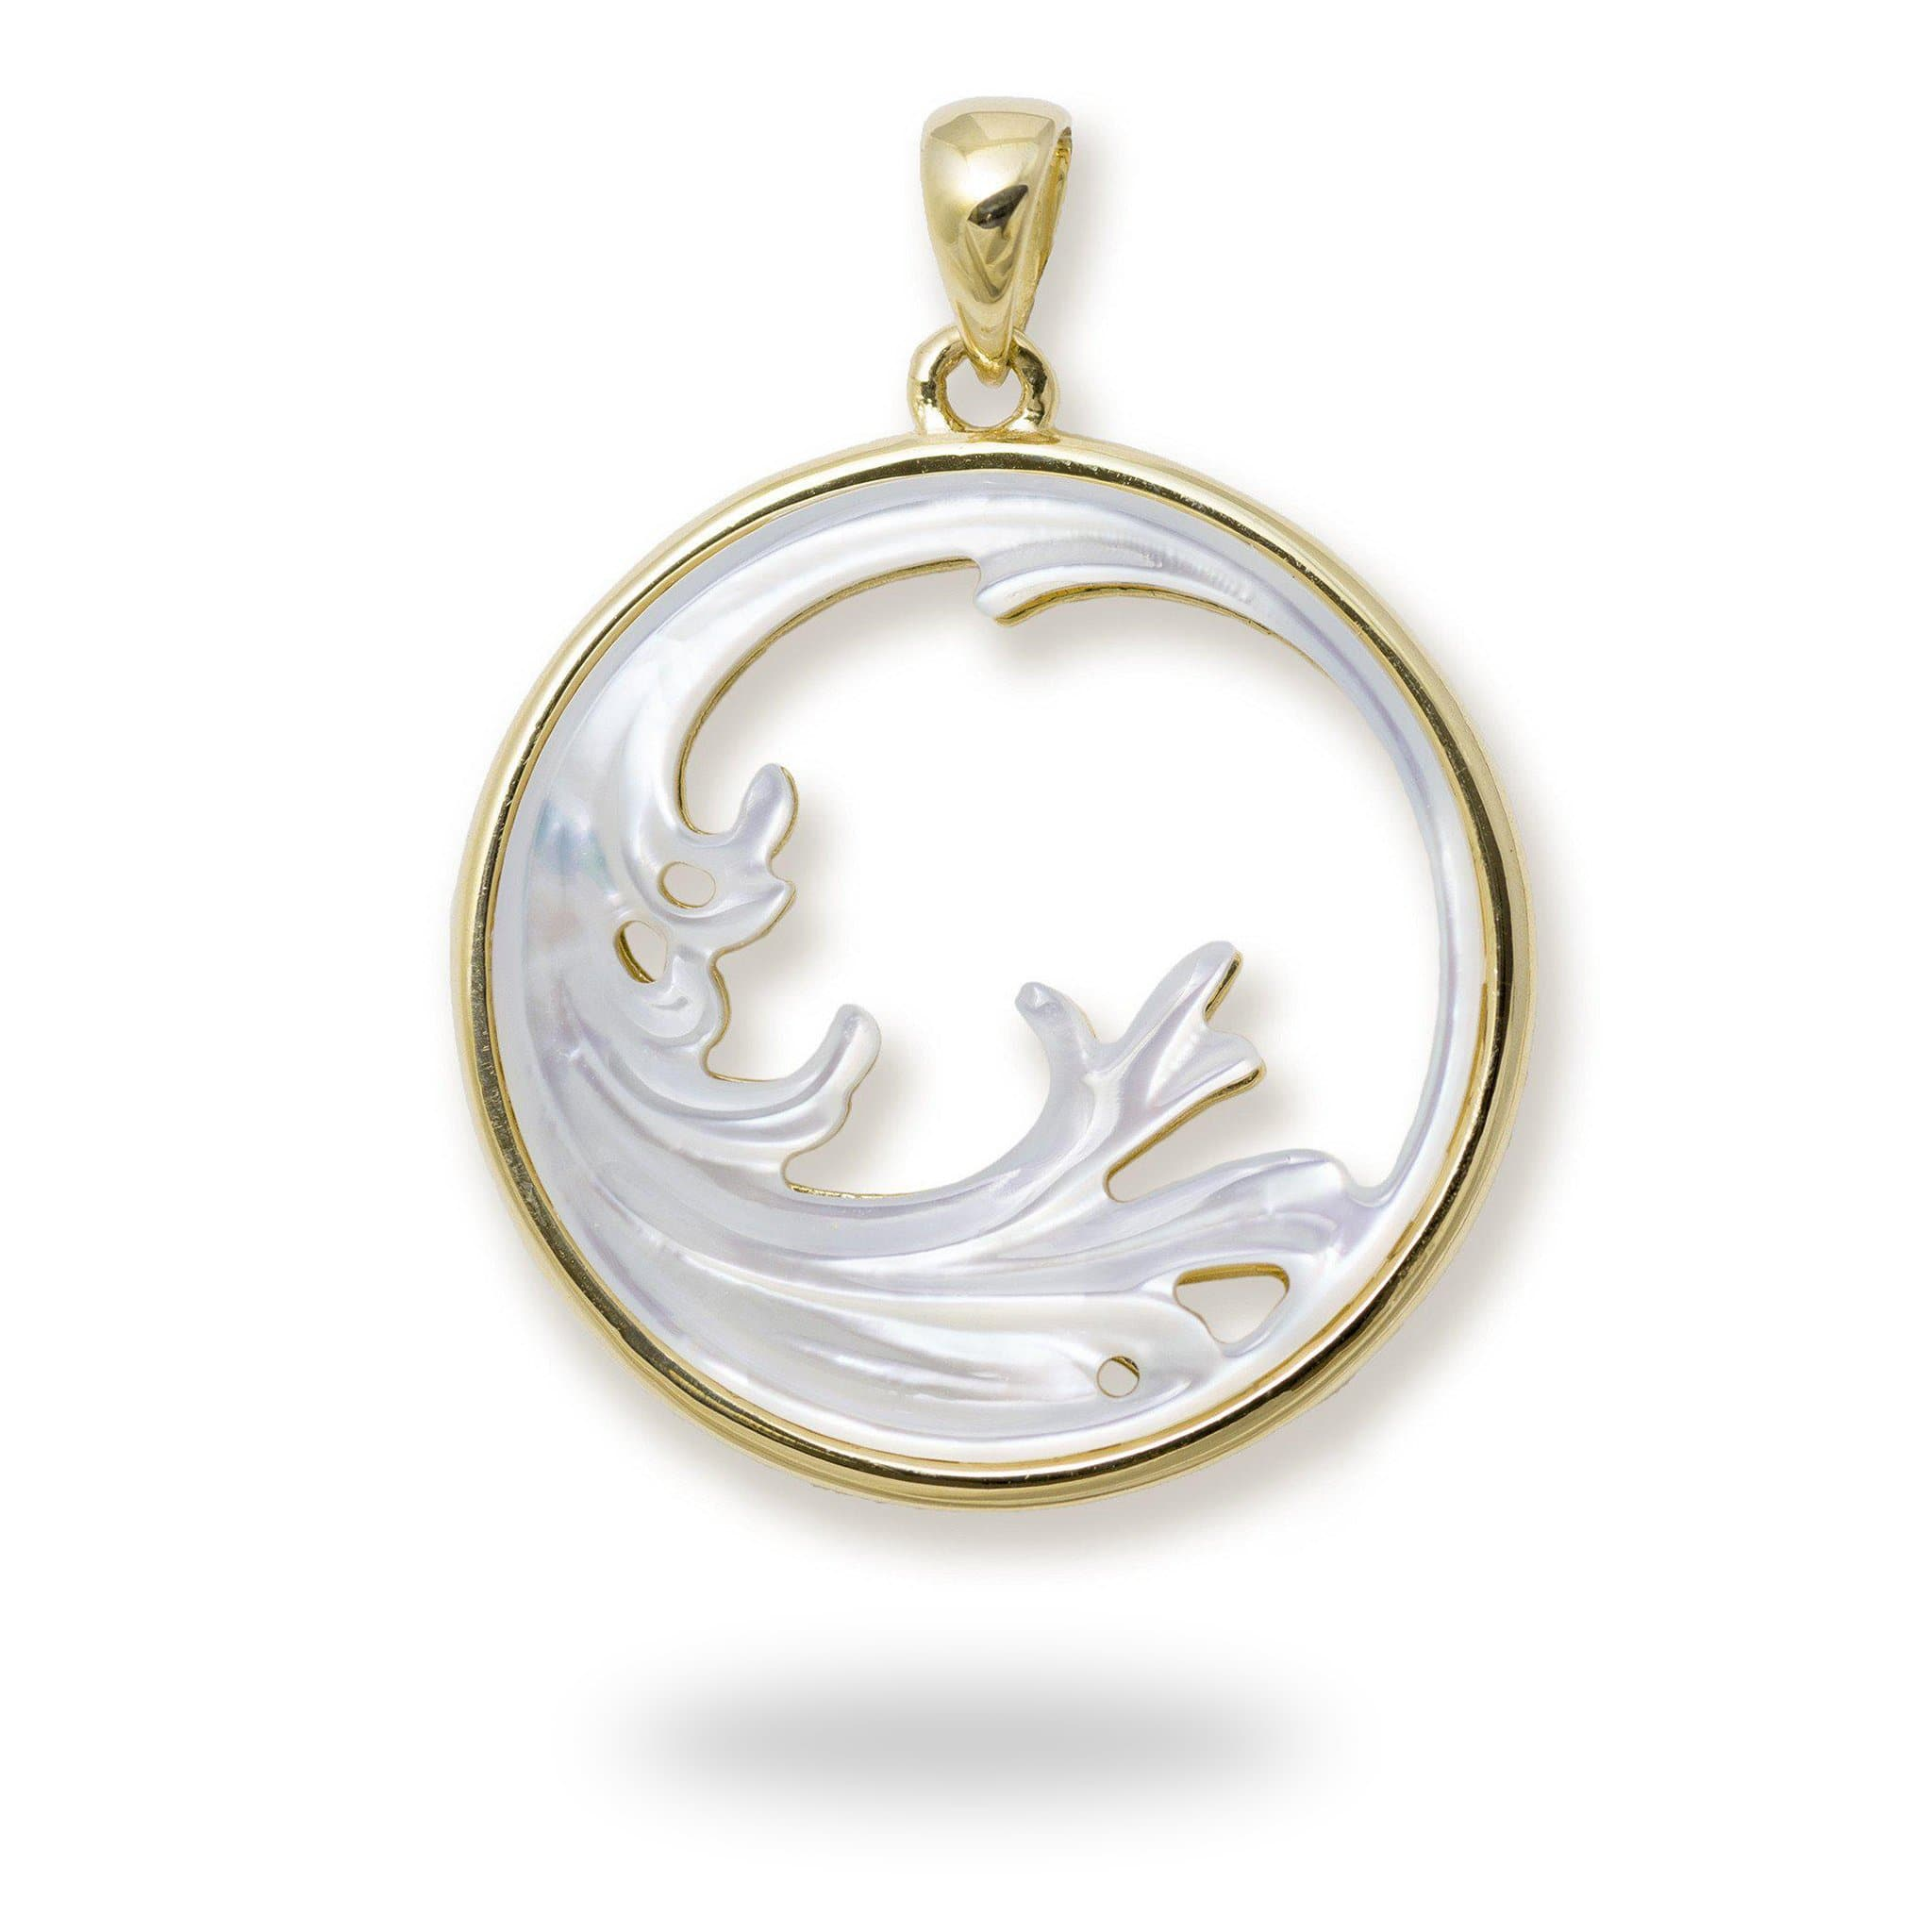 mother of pearl pendant. Nalu (Wave) Splash Mother Of Pearl Pendant In 14K Yellow Gold - 27mm 031